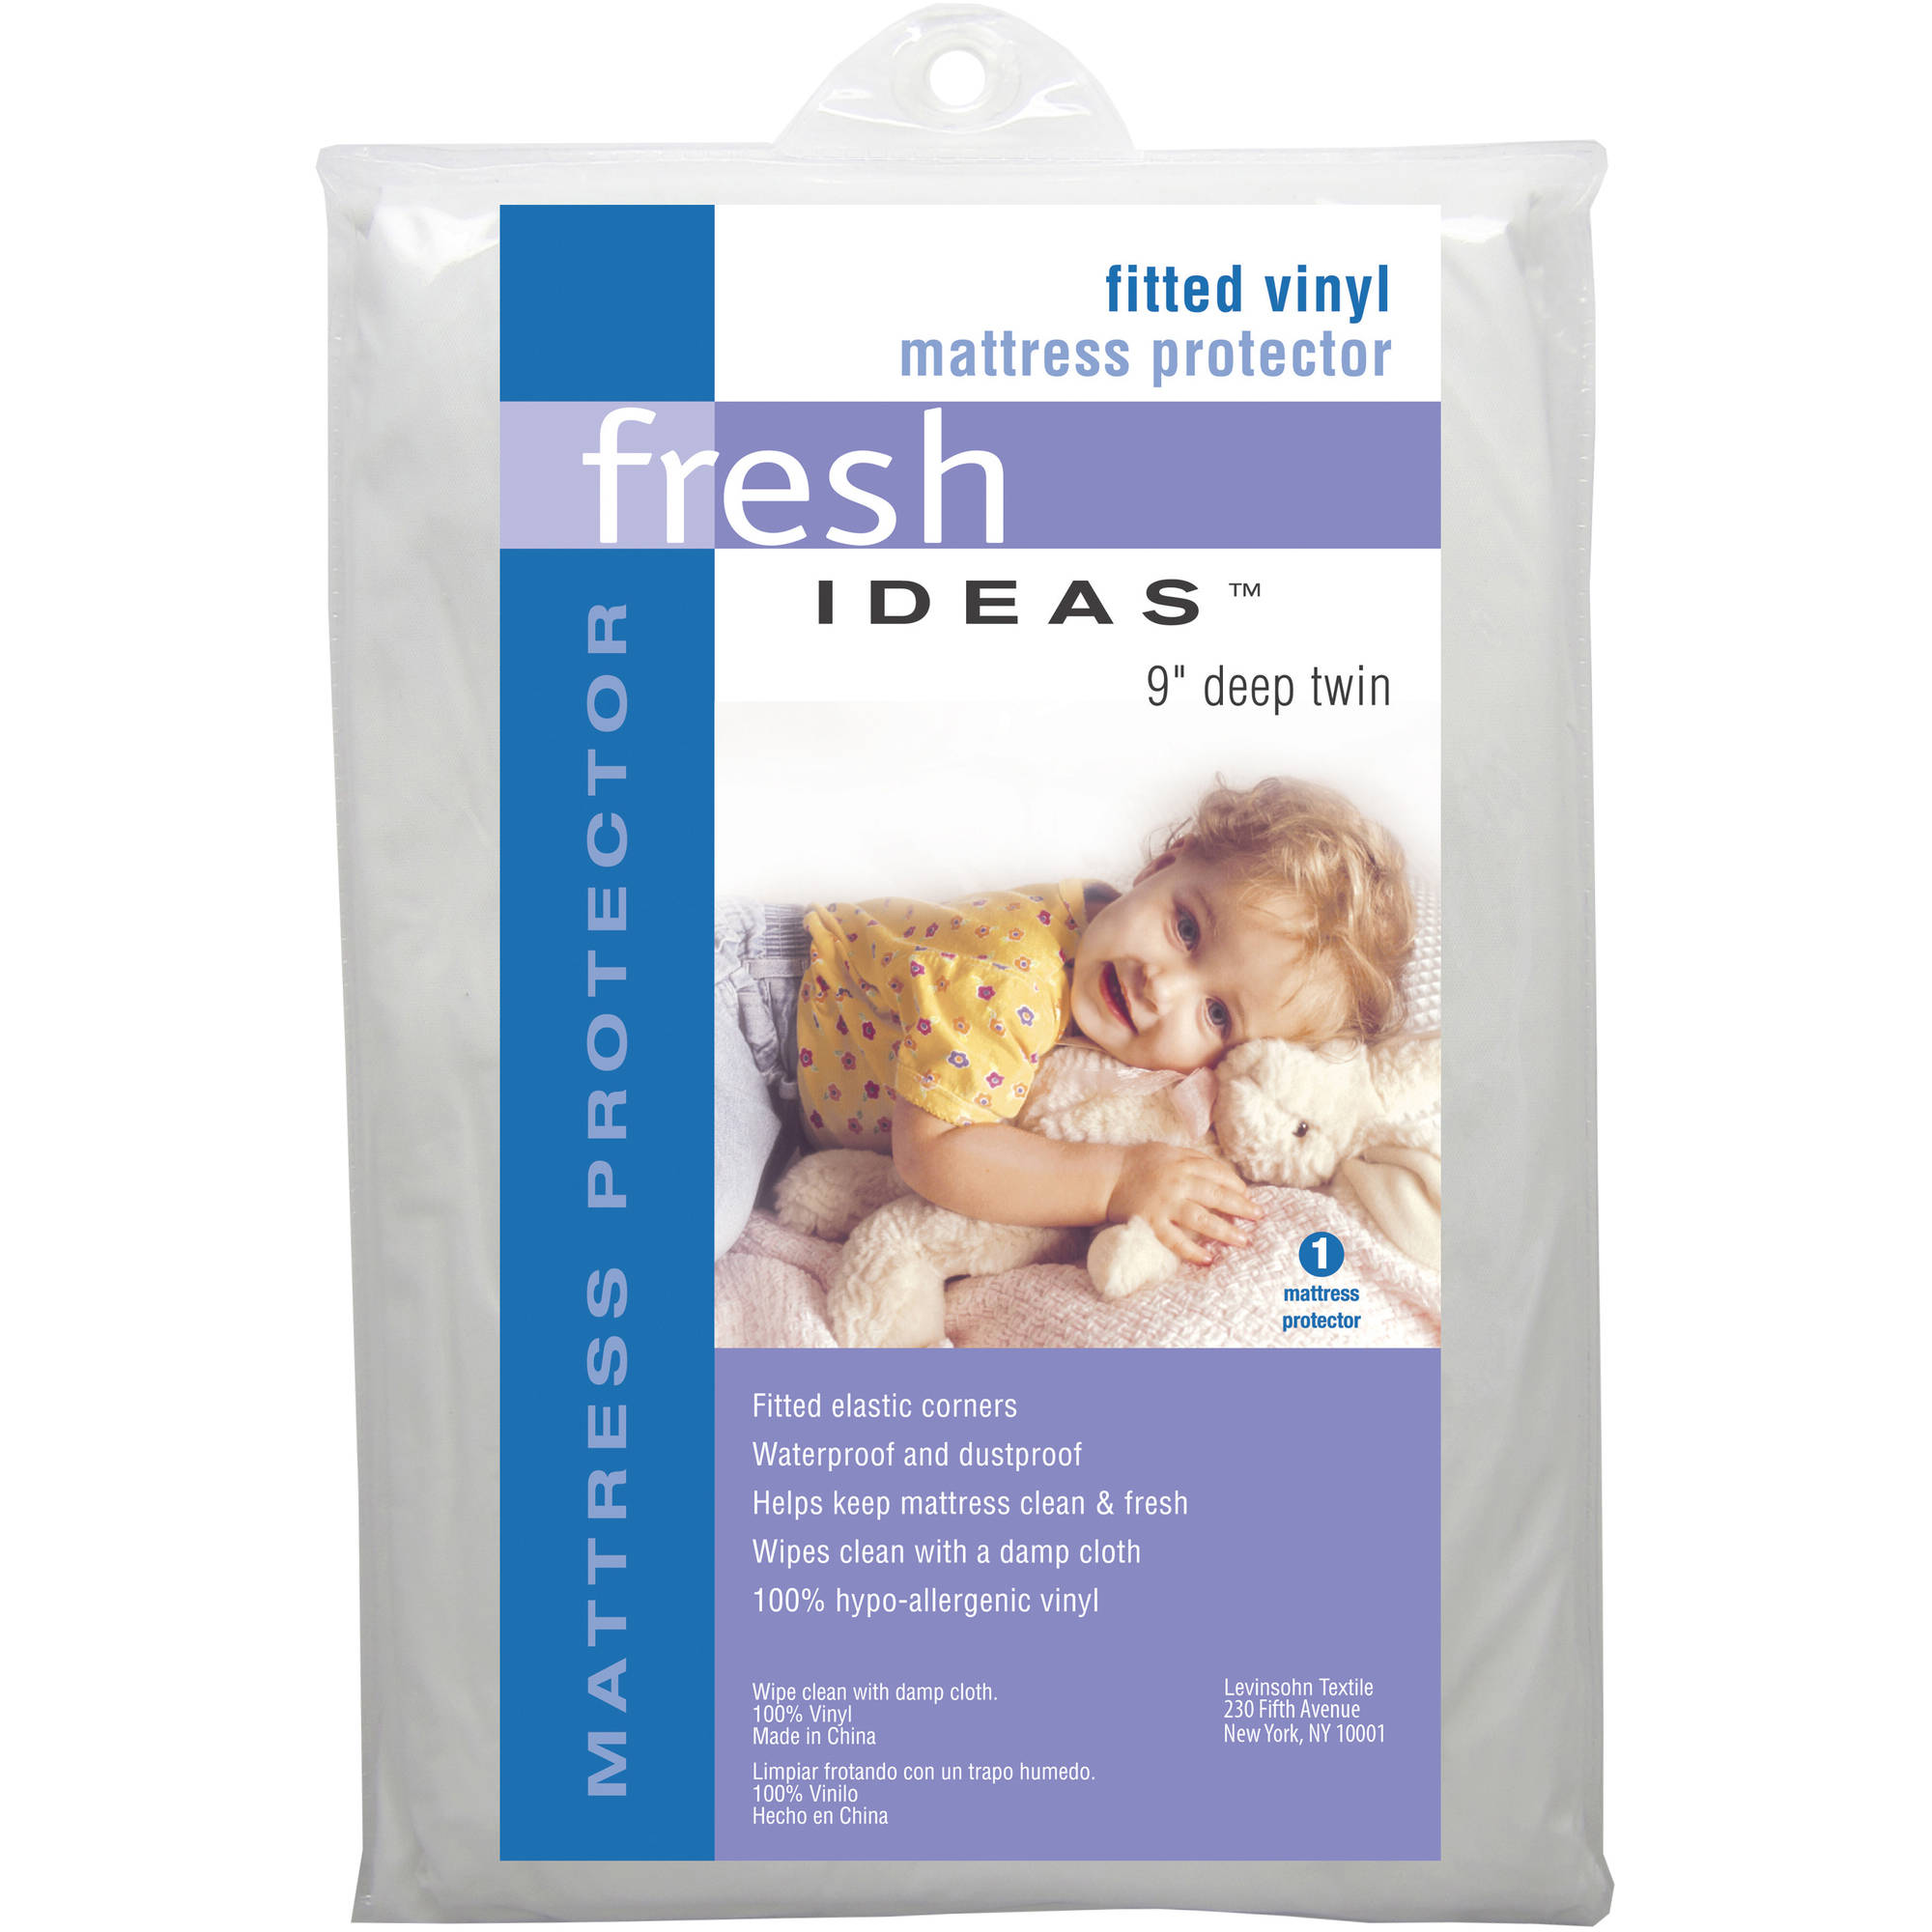 Fresh Ideas Fitted Vinyl Mattress Protector by Levinsohn Textile Company